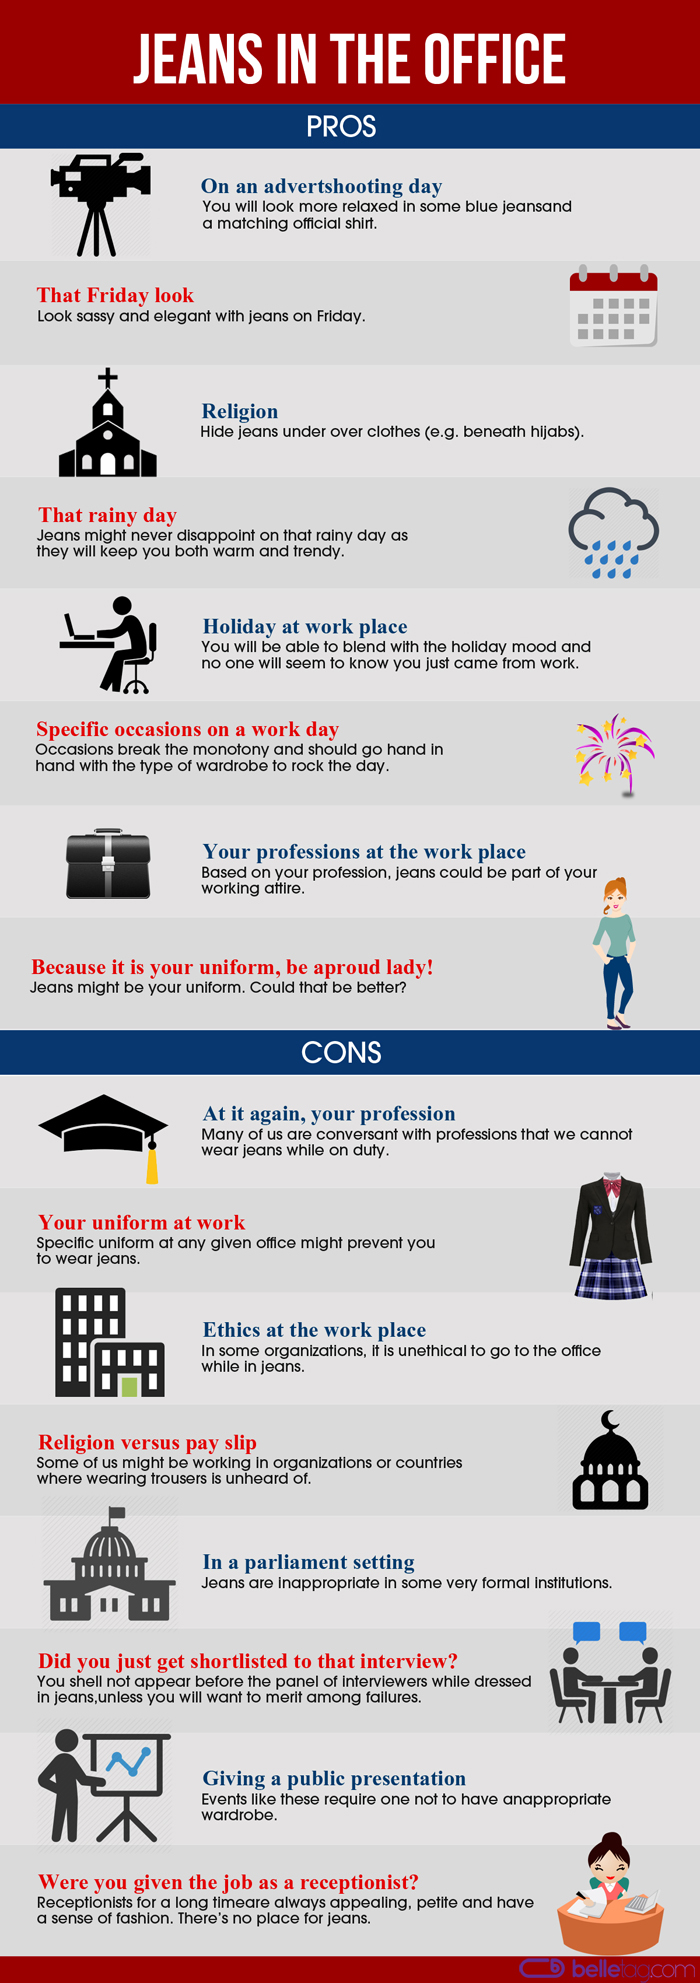 Infographic summarizing all Pros and Cons of wearing jeans in the office attire